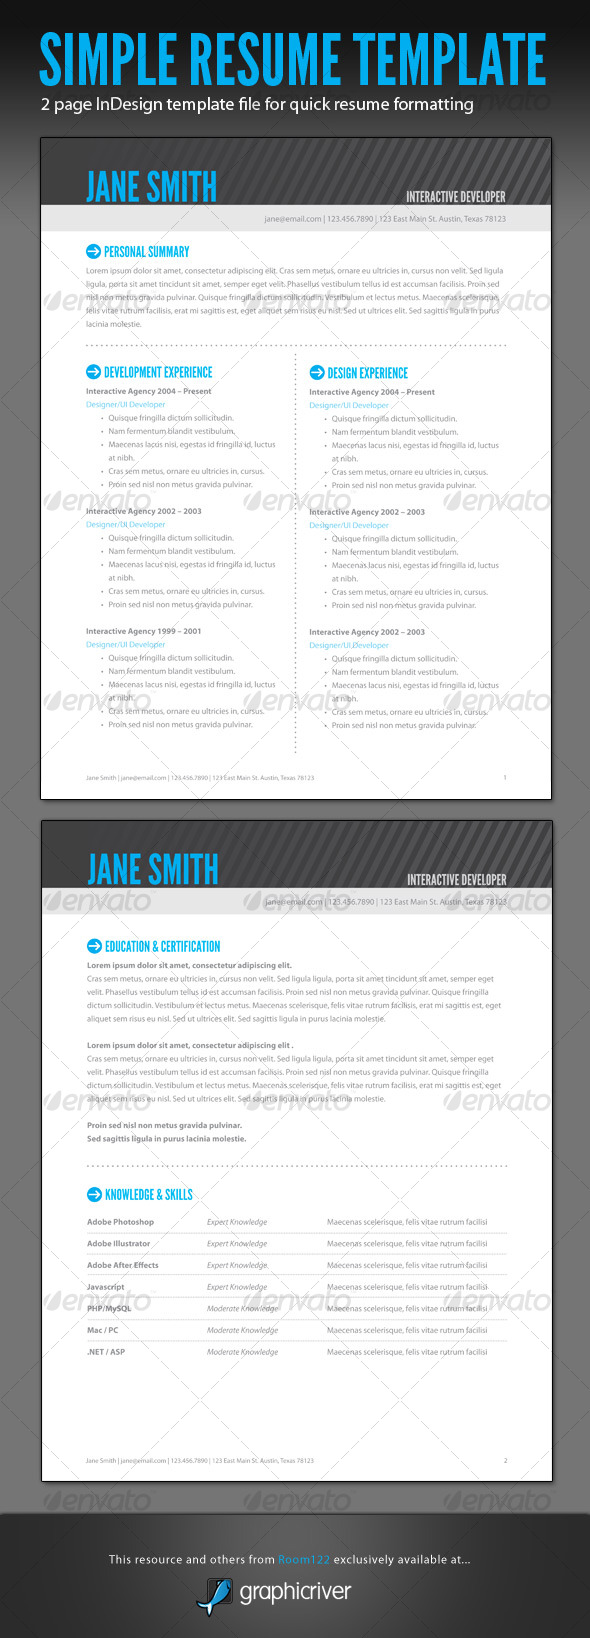 simple resume indesign template graphicriver